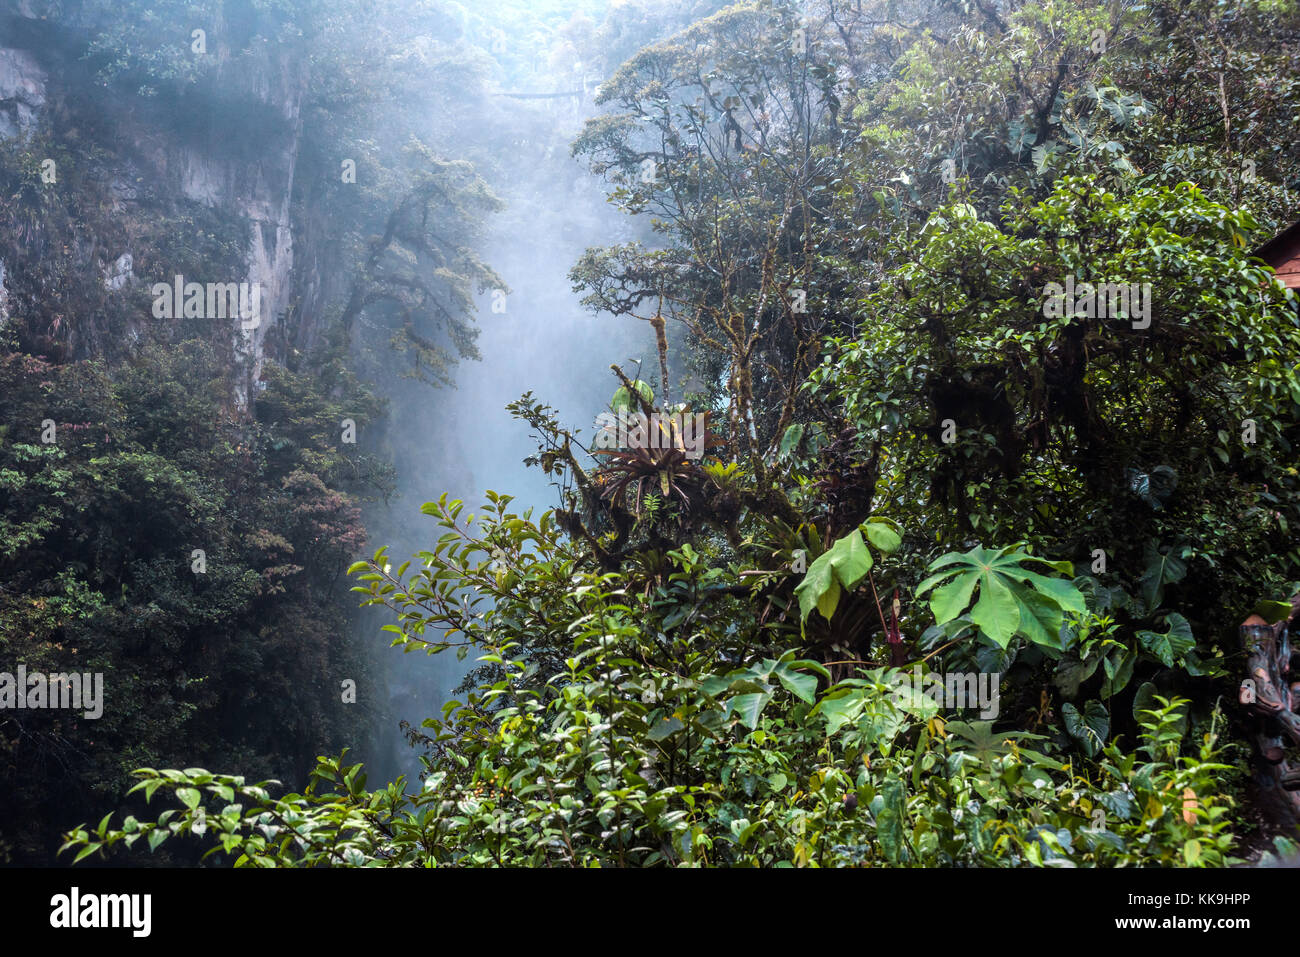 Mountain rainforest, near the waterfall Pailon del Diablo in the Andes. Banos. Ecuador - Stock Image